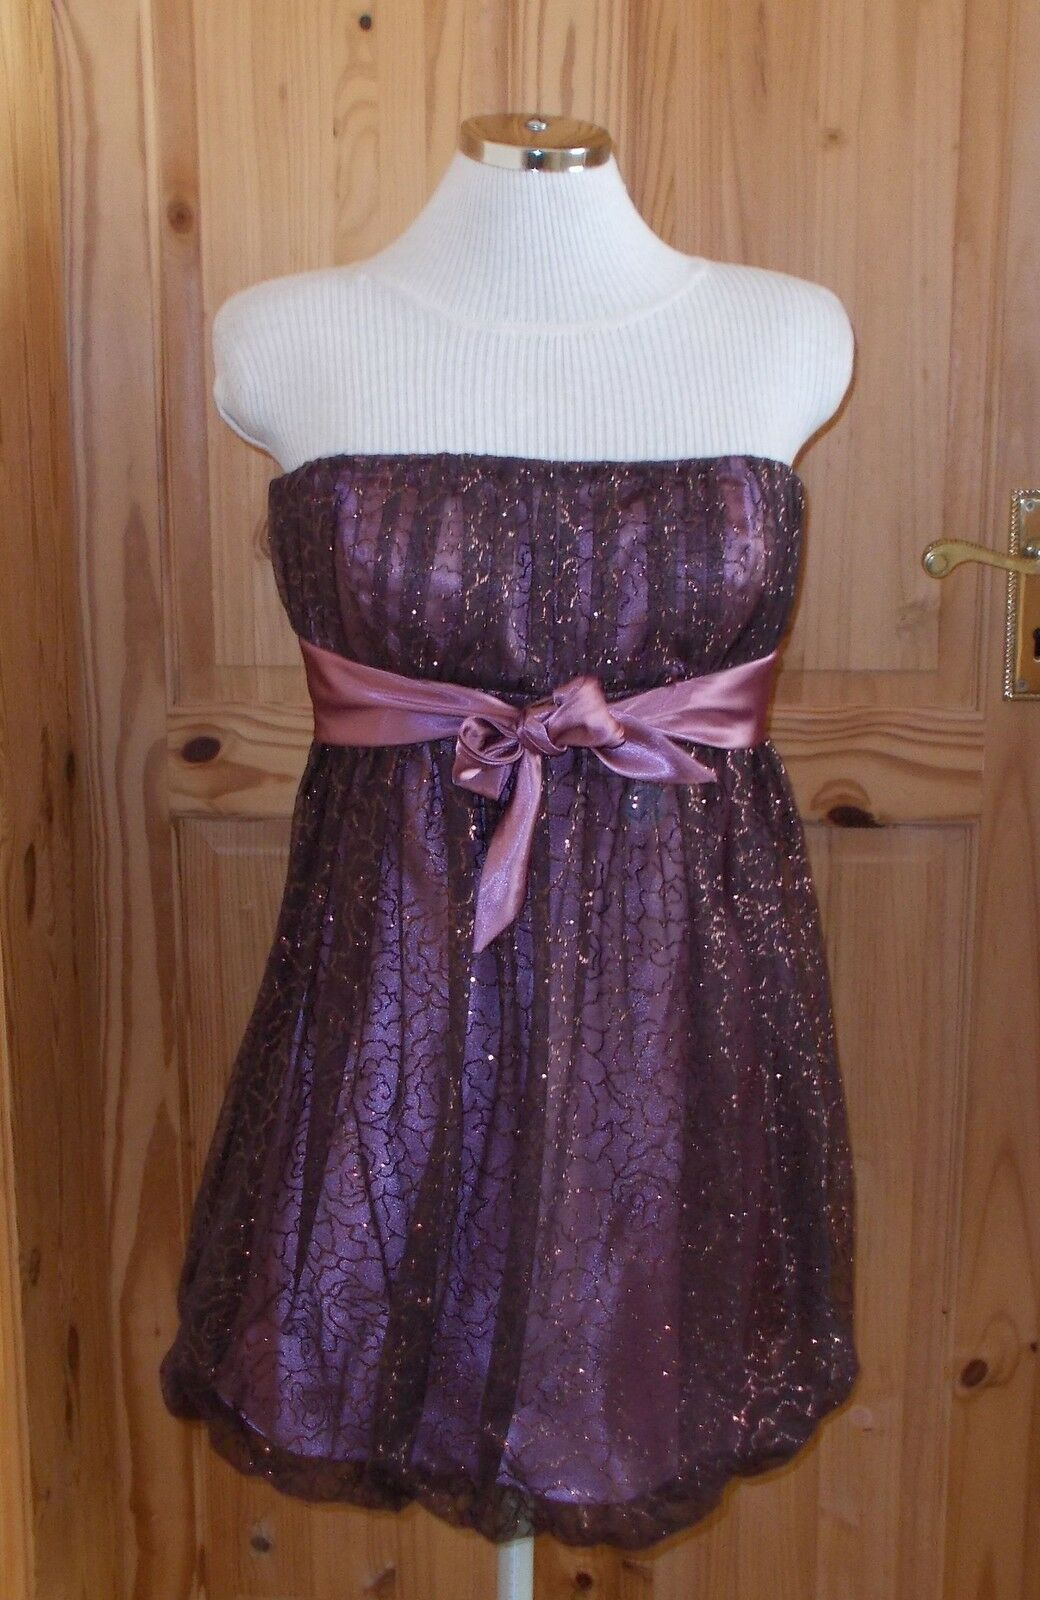 1MAX  dusky pink pink brown copper satin tulle puffball bubble prom dress 8